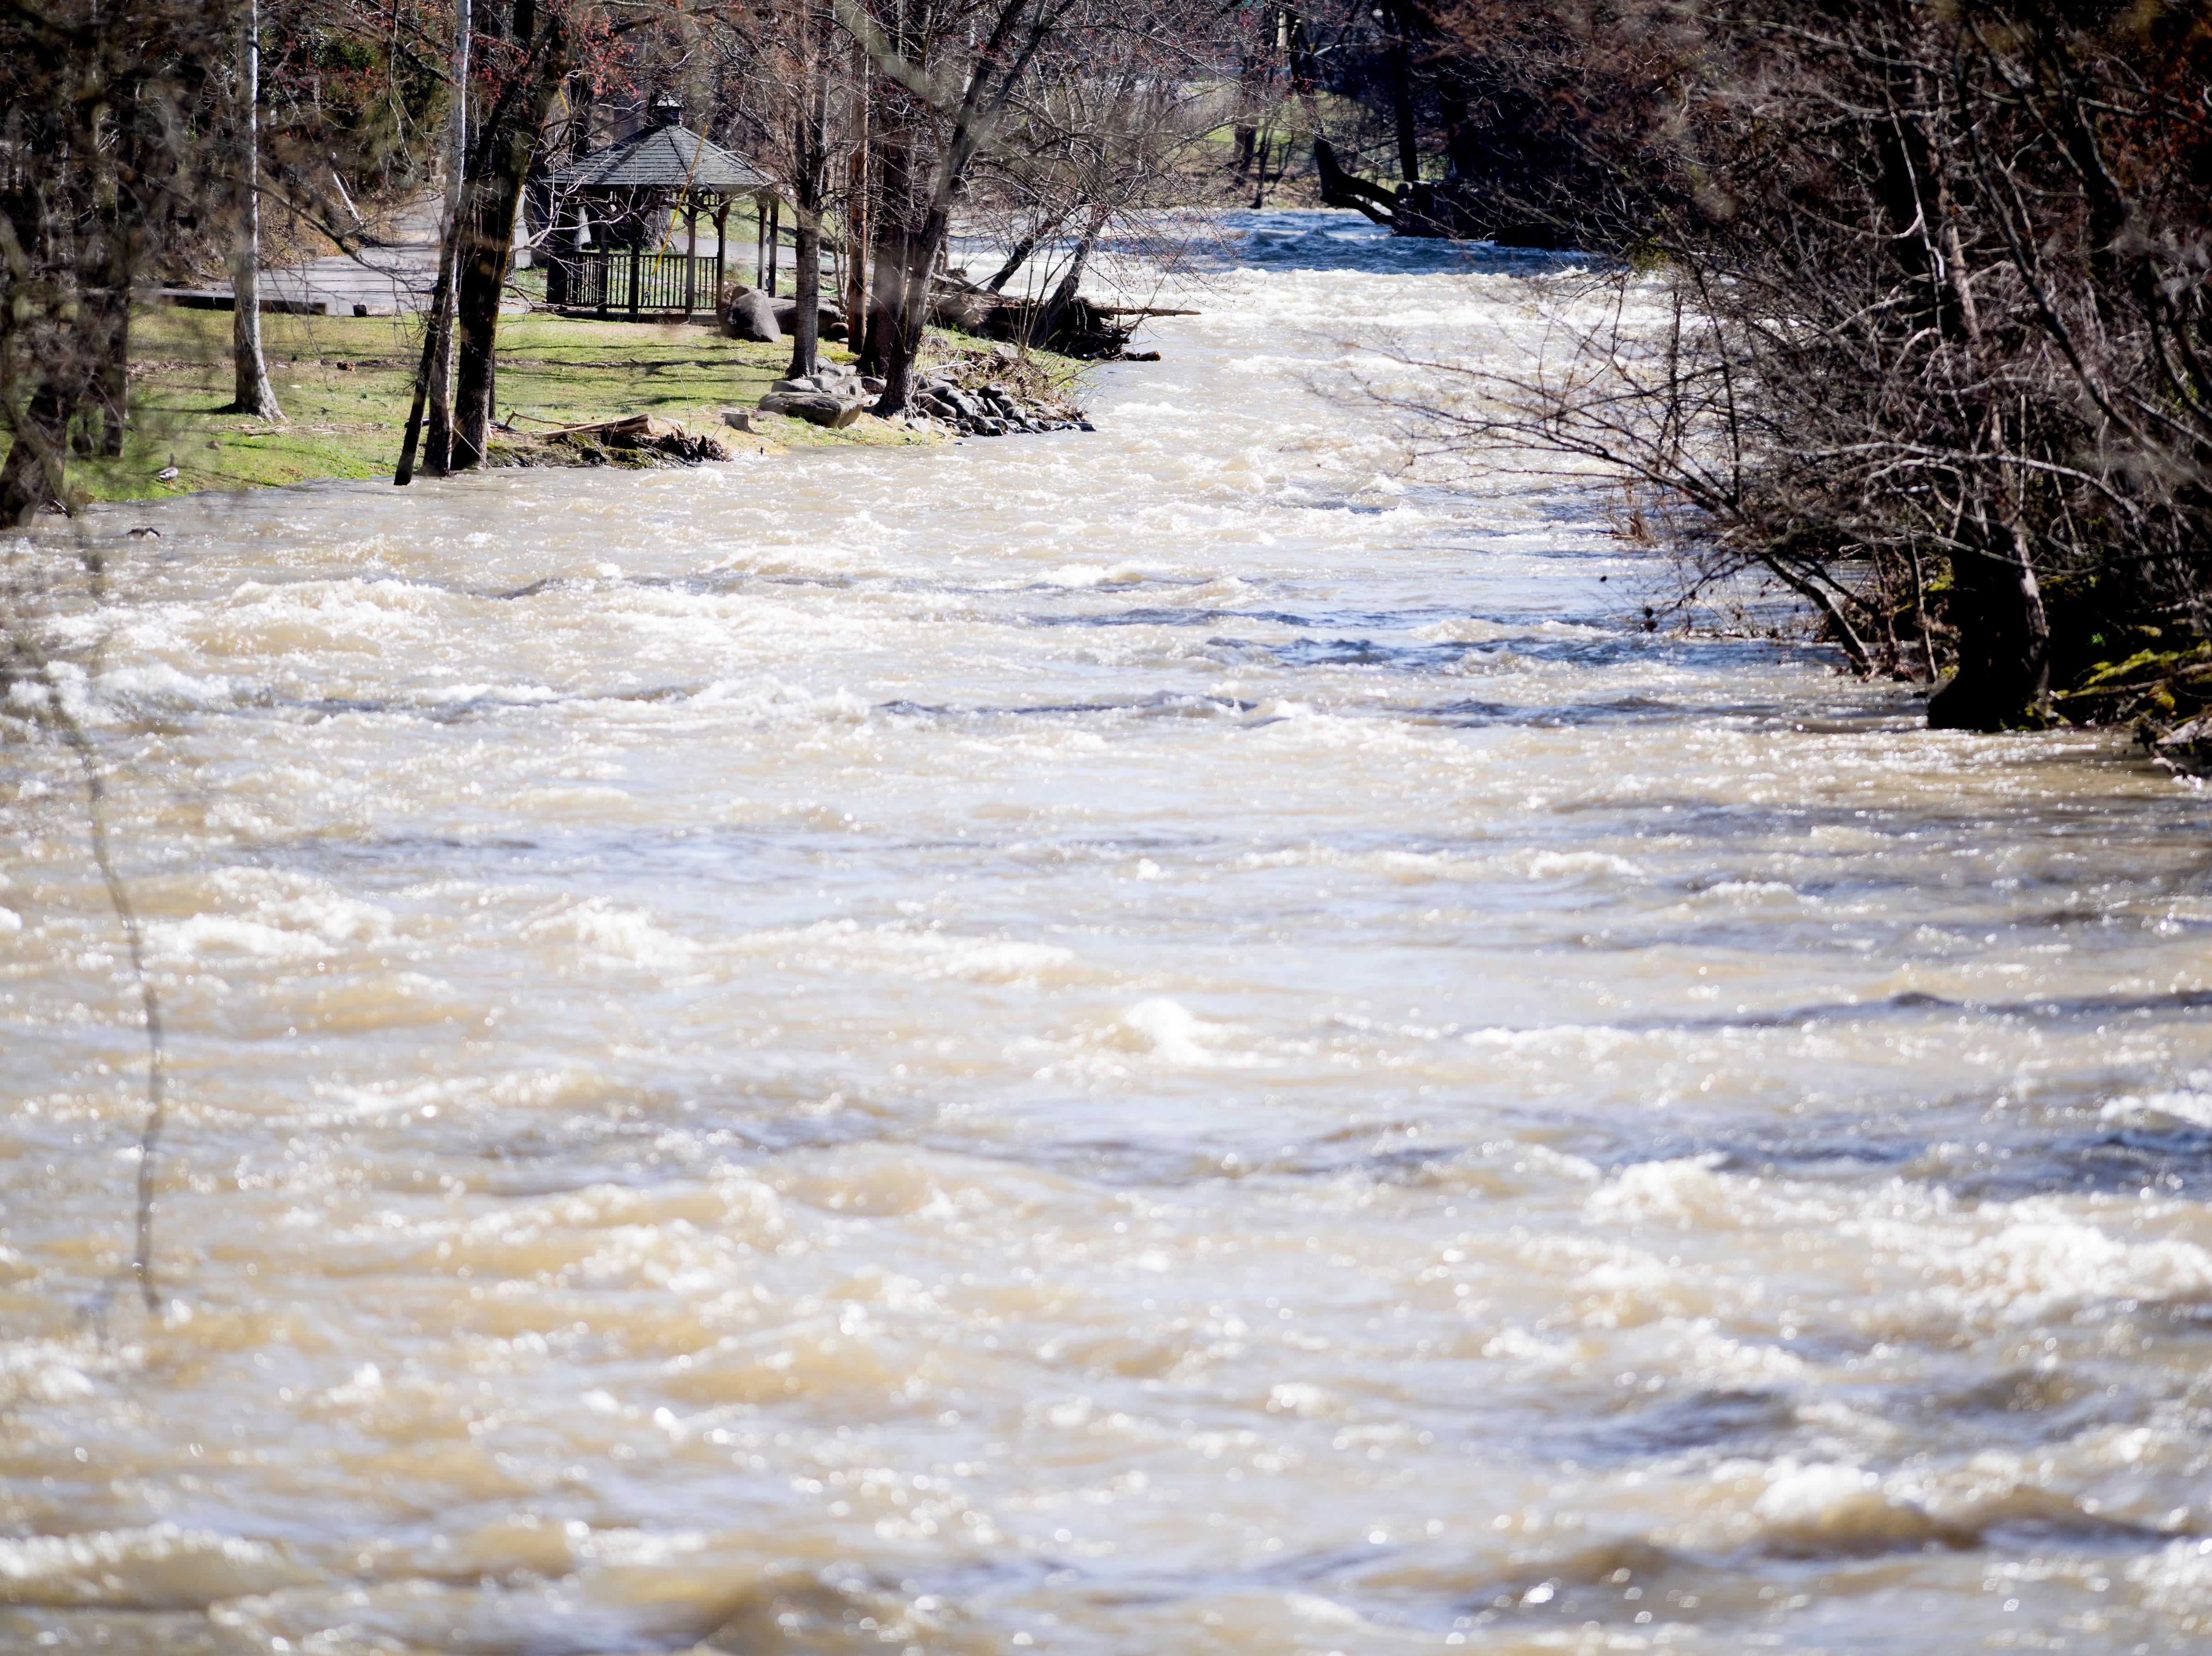 An overflowing West Prong Little Pigeon River in Pigeon Forge, Tennessee on Sunday, February 24, 2019.